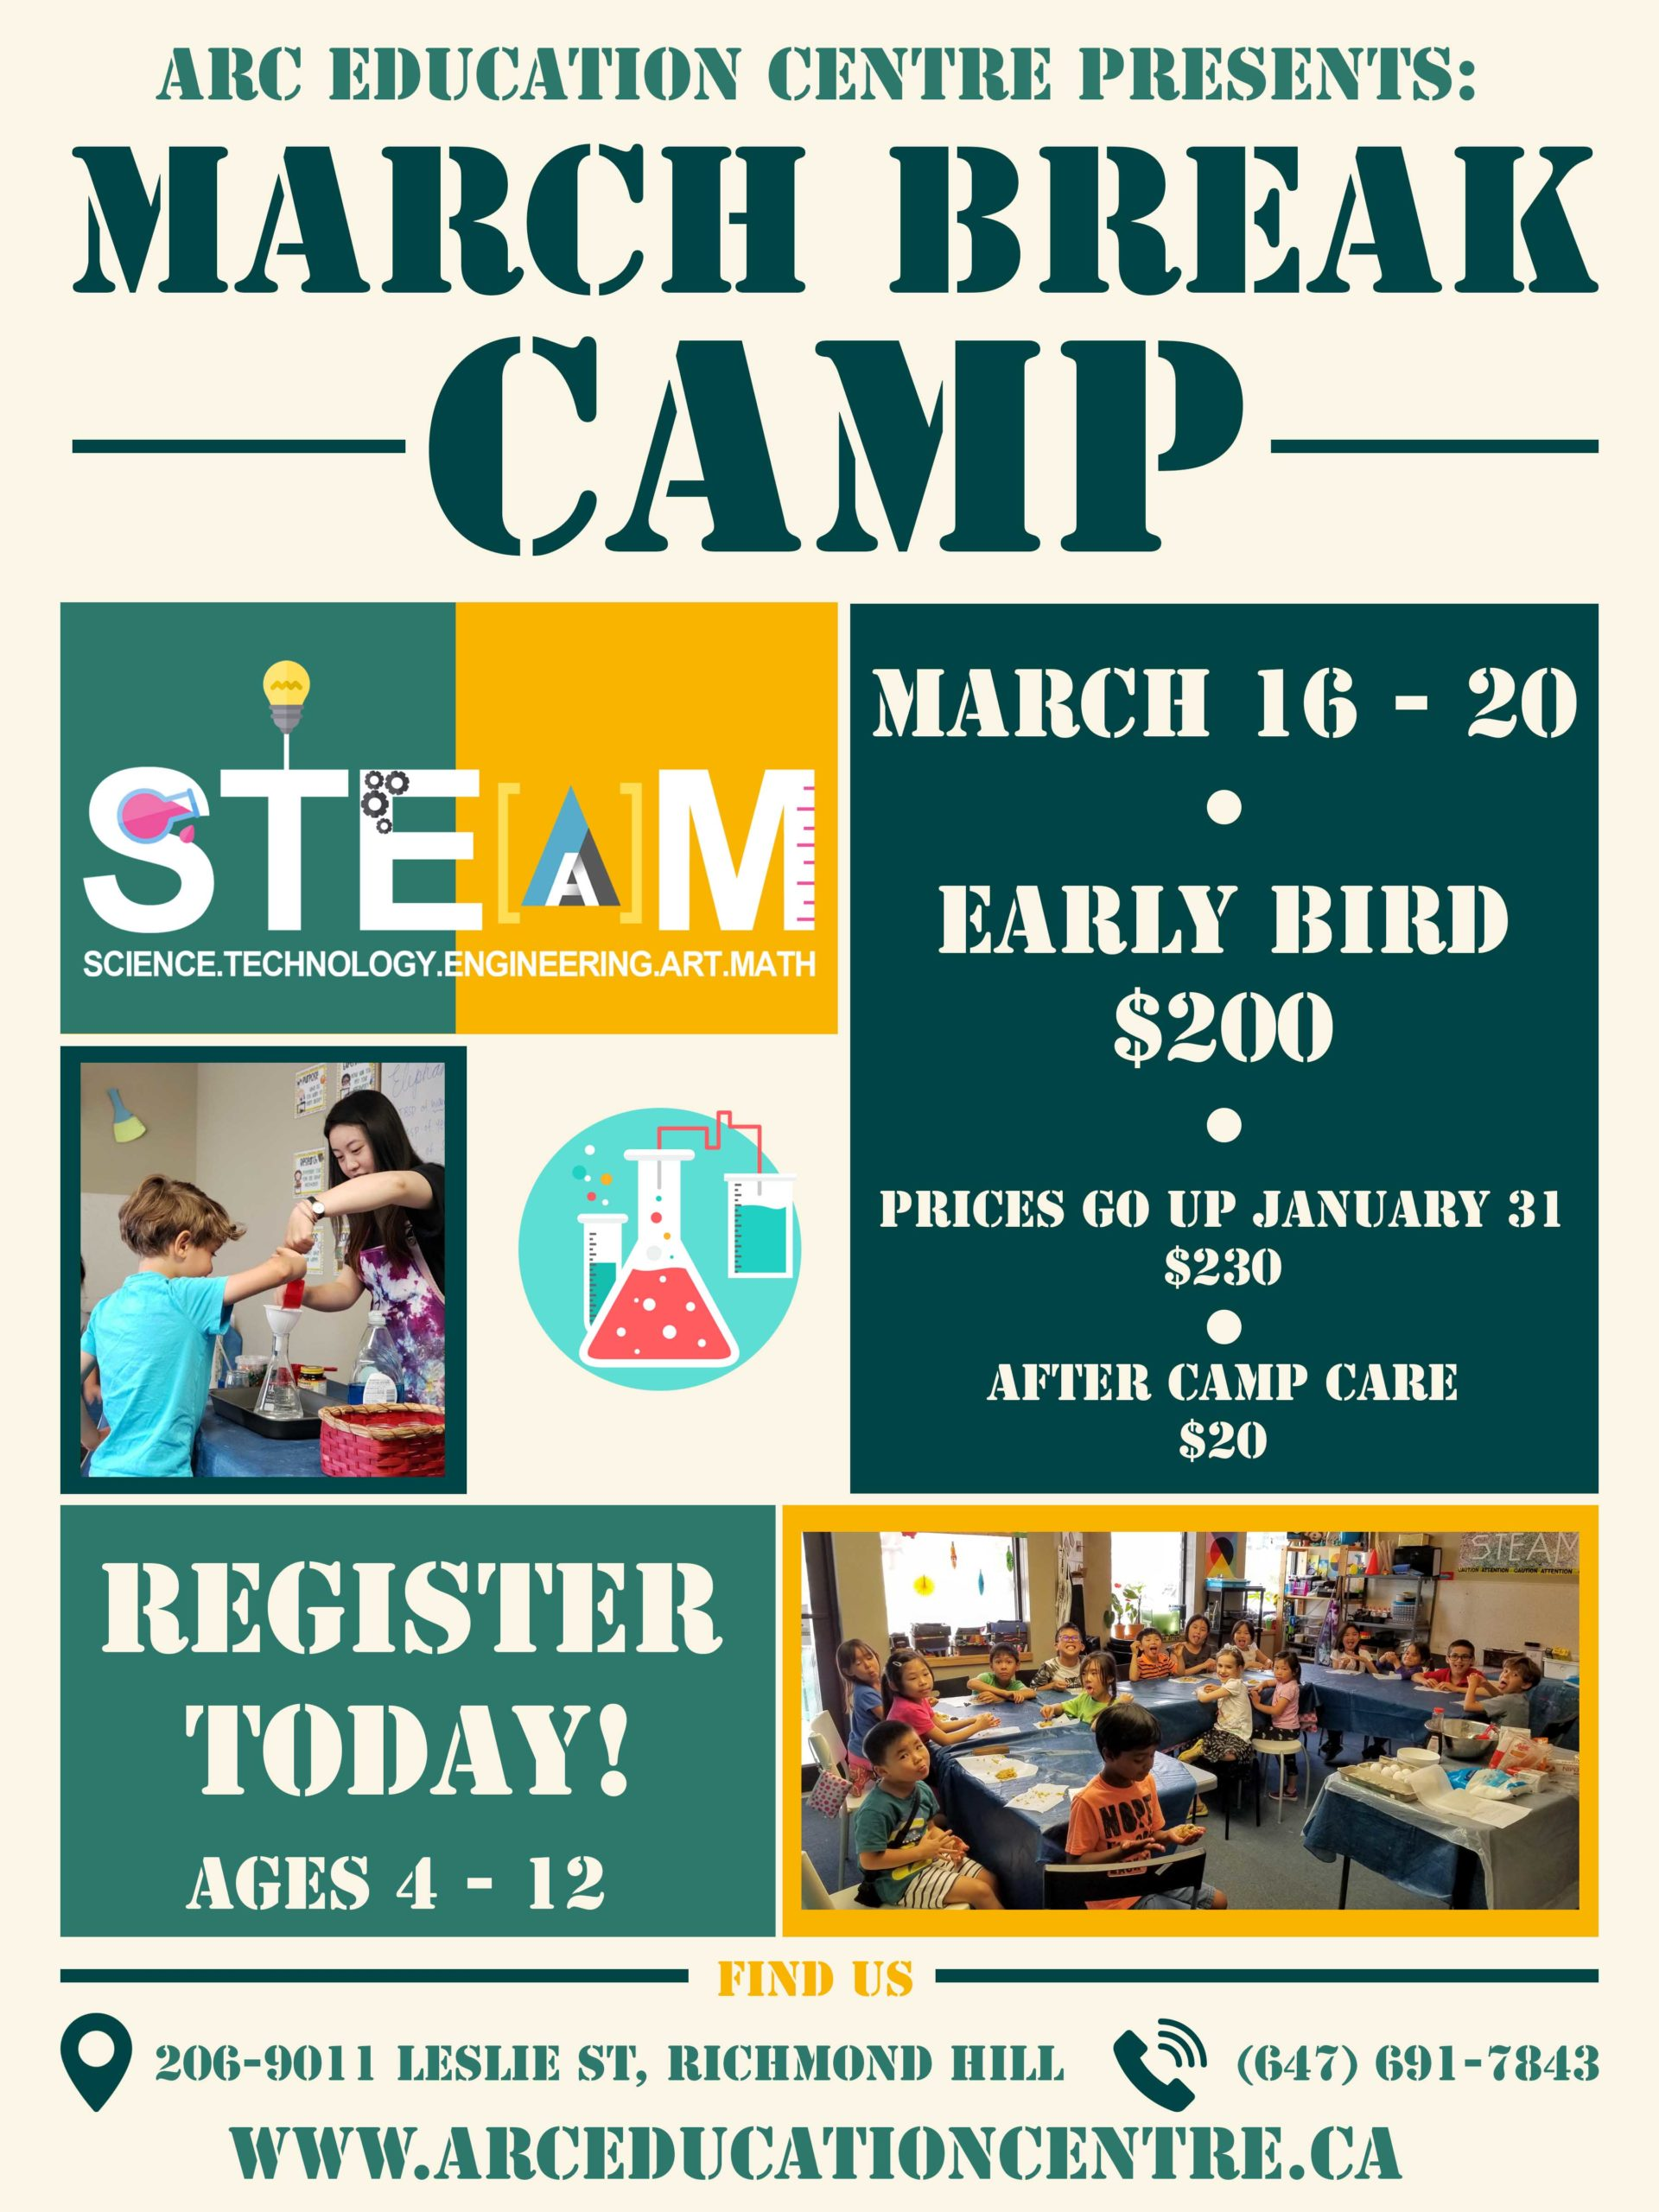 S.T.E.A.M. March Break Camp picture